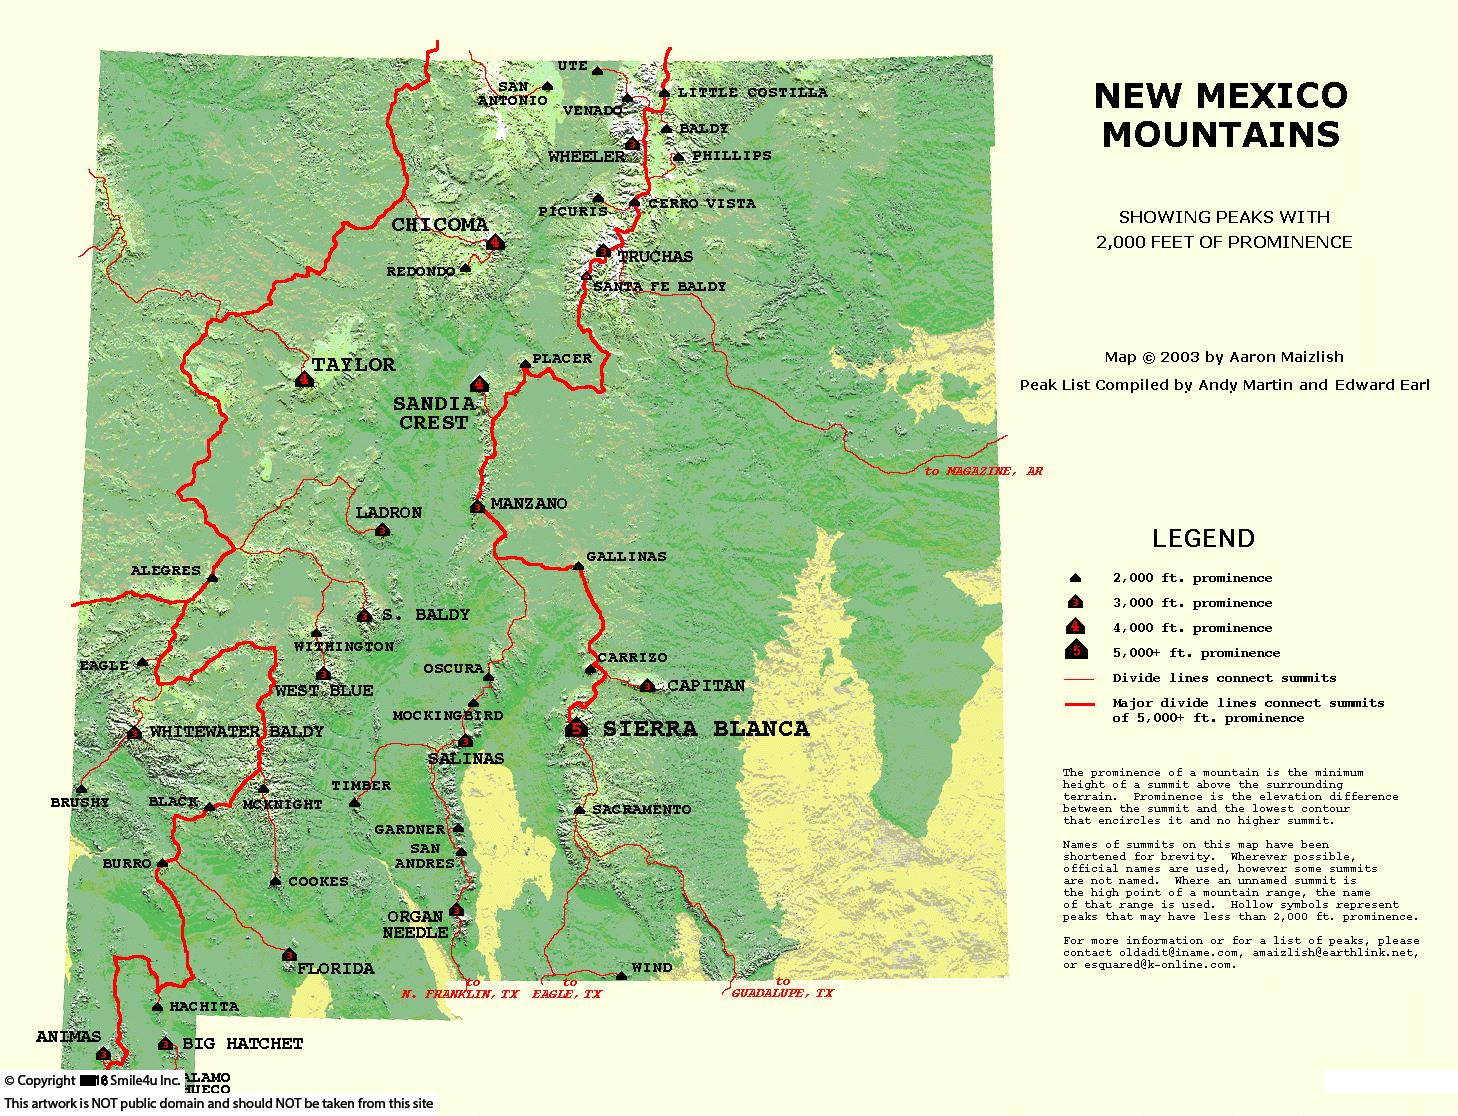 377349_watermarked_newmexicosummits.png